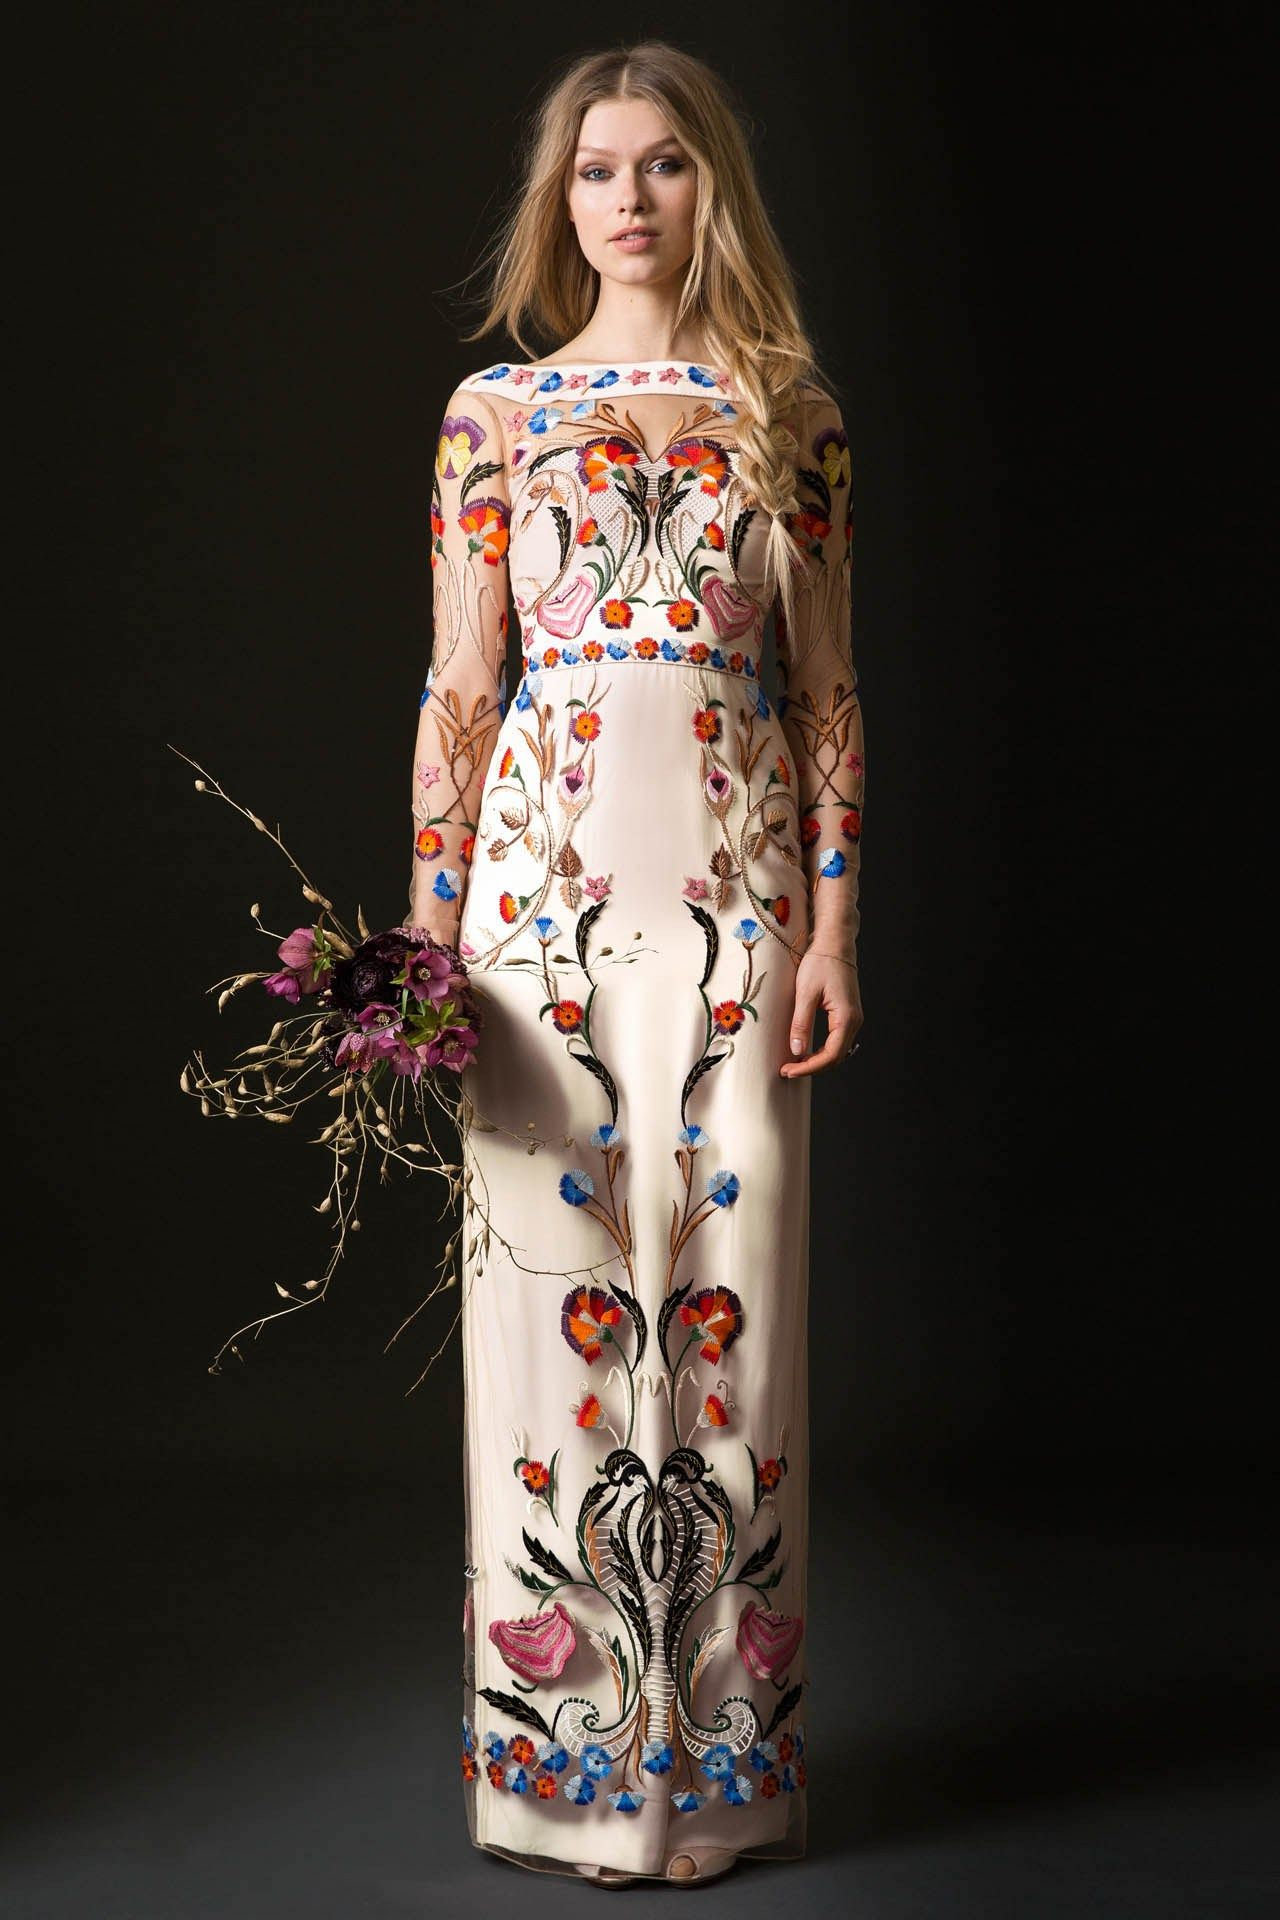 91848e2d310 A colourful embroidered illusion sleeve wedding dress by Temperley Bridal